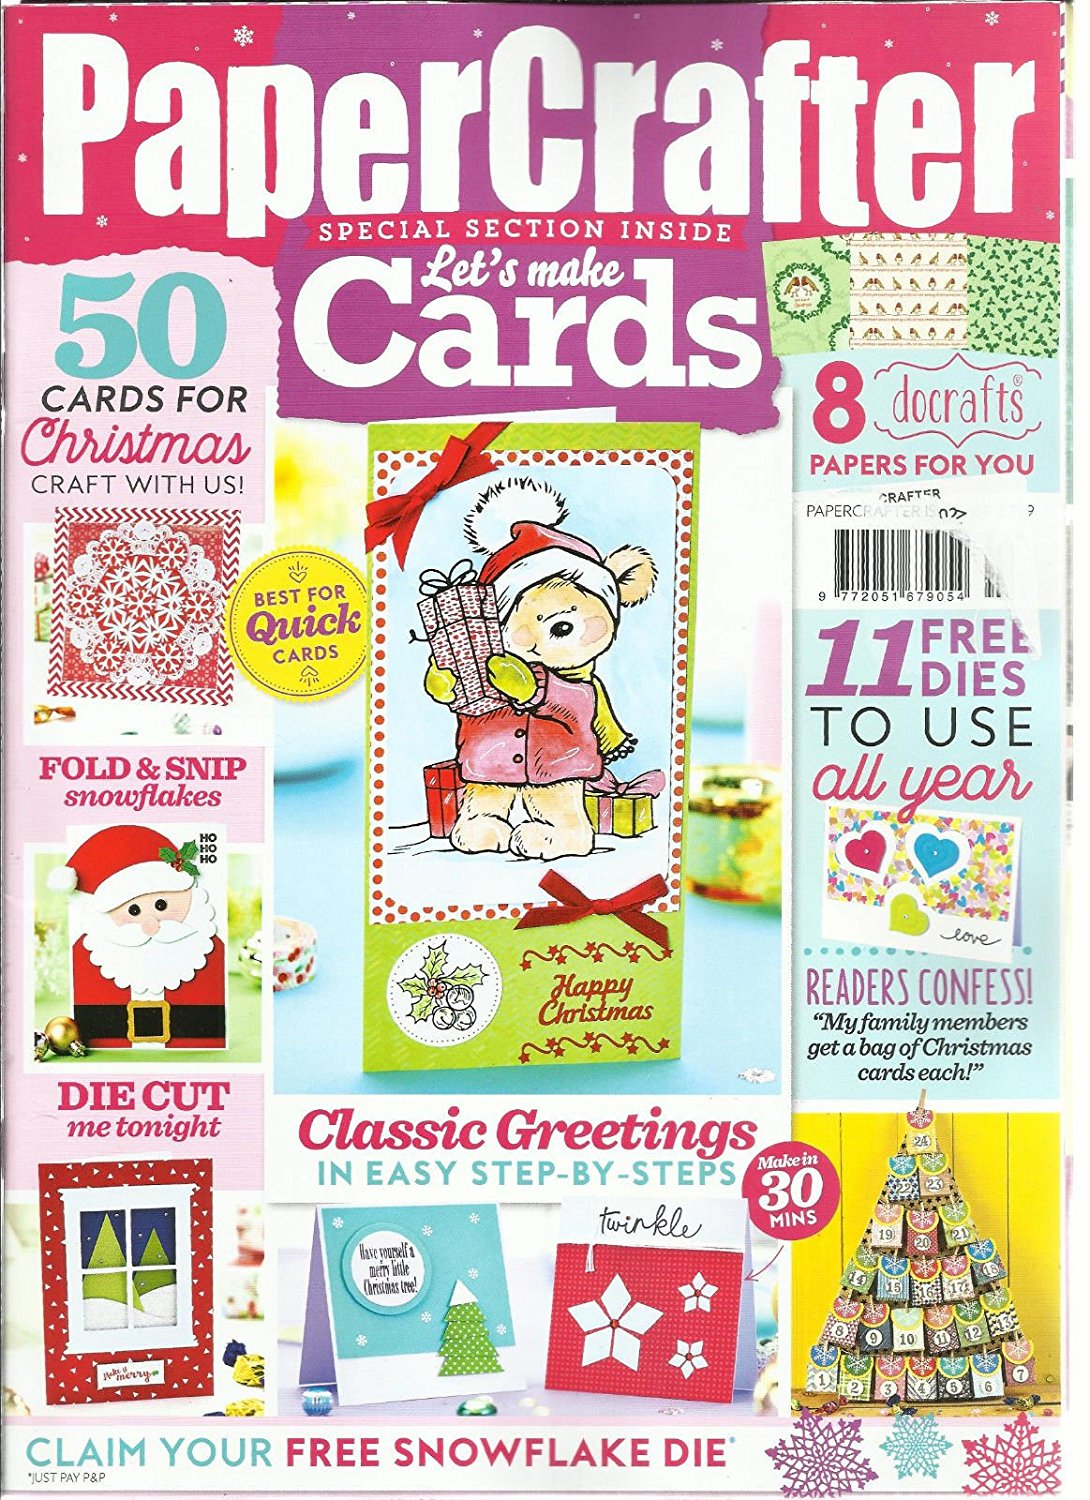 PAPER CRAFTER, LET'S MAKE CARDS, SPECIAL SECTION INSIDE ISSUE, 2016 ISSUE # 98